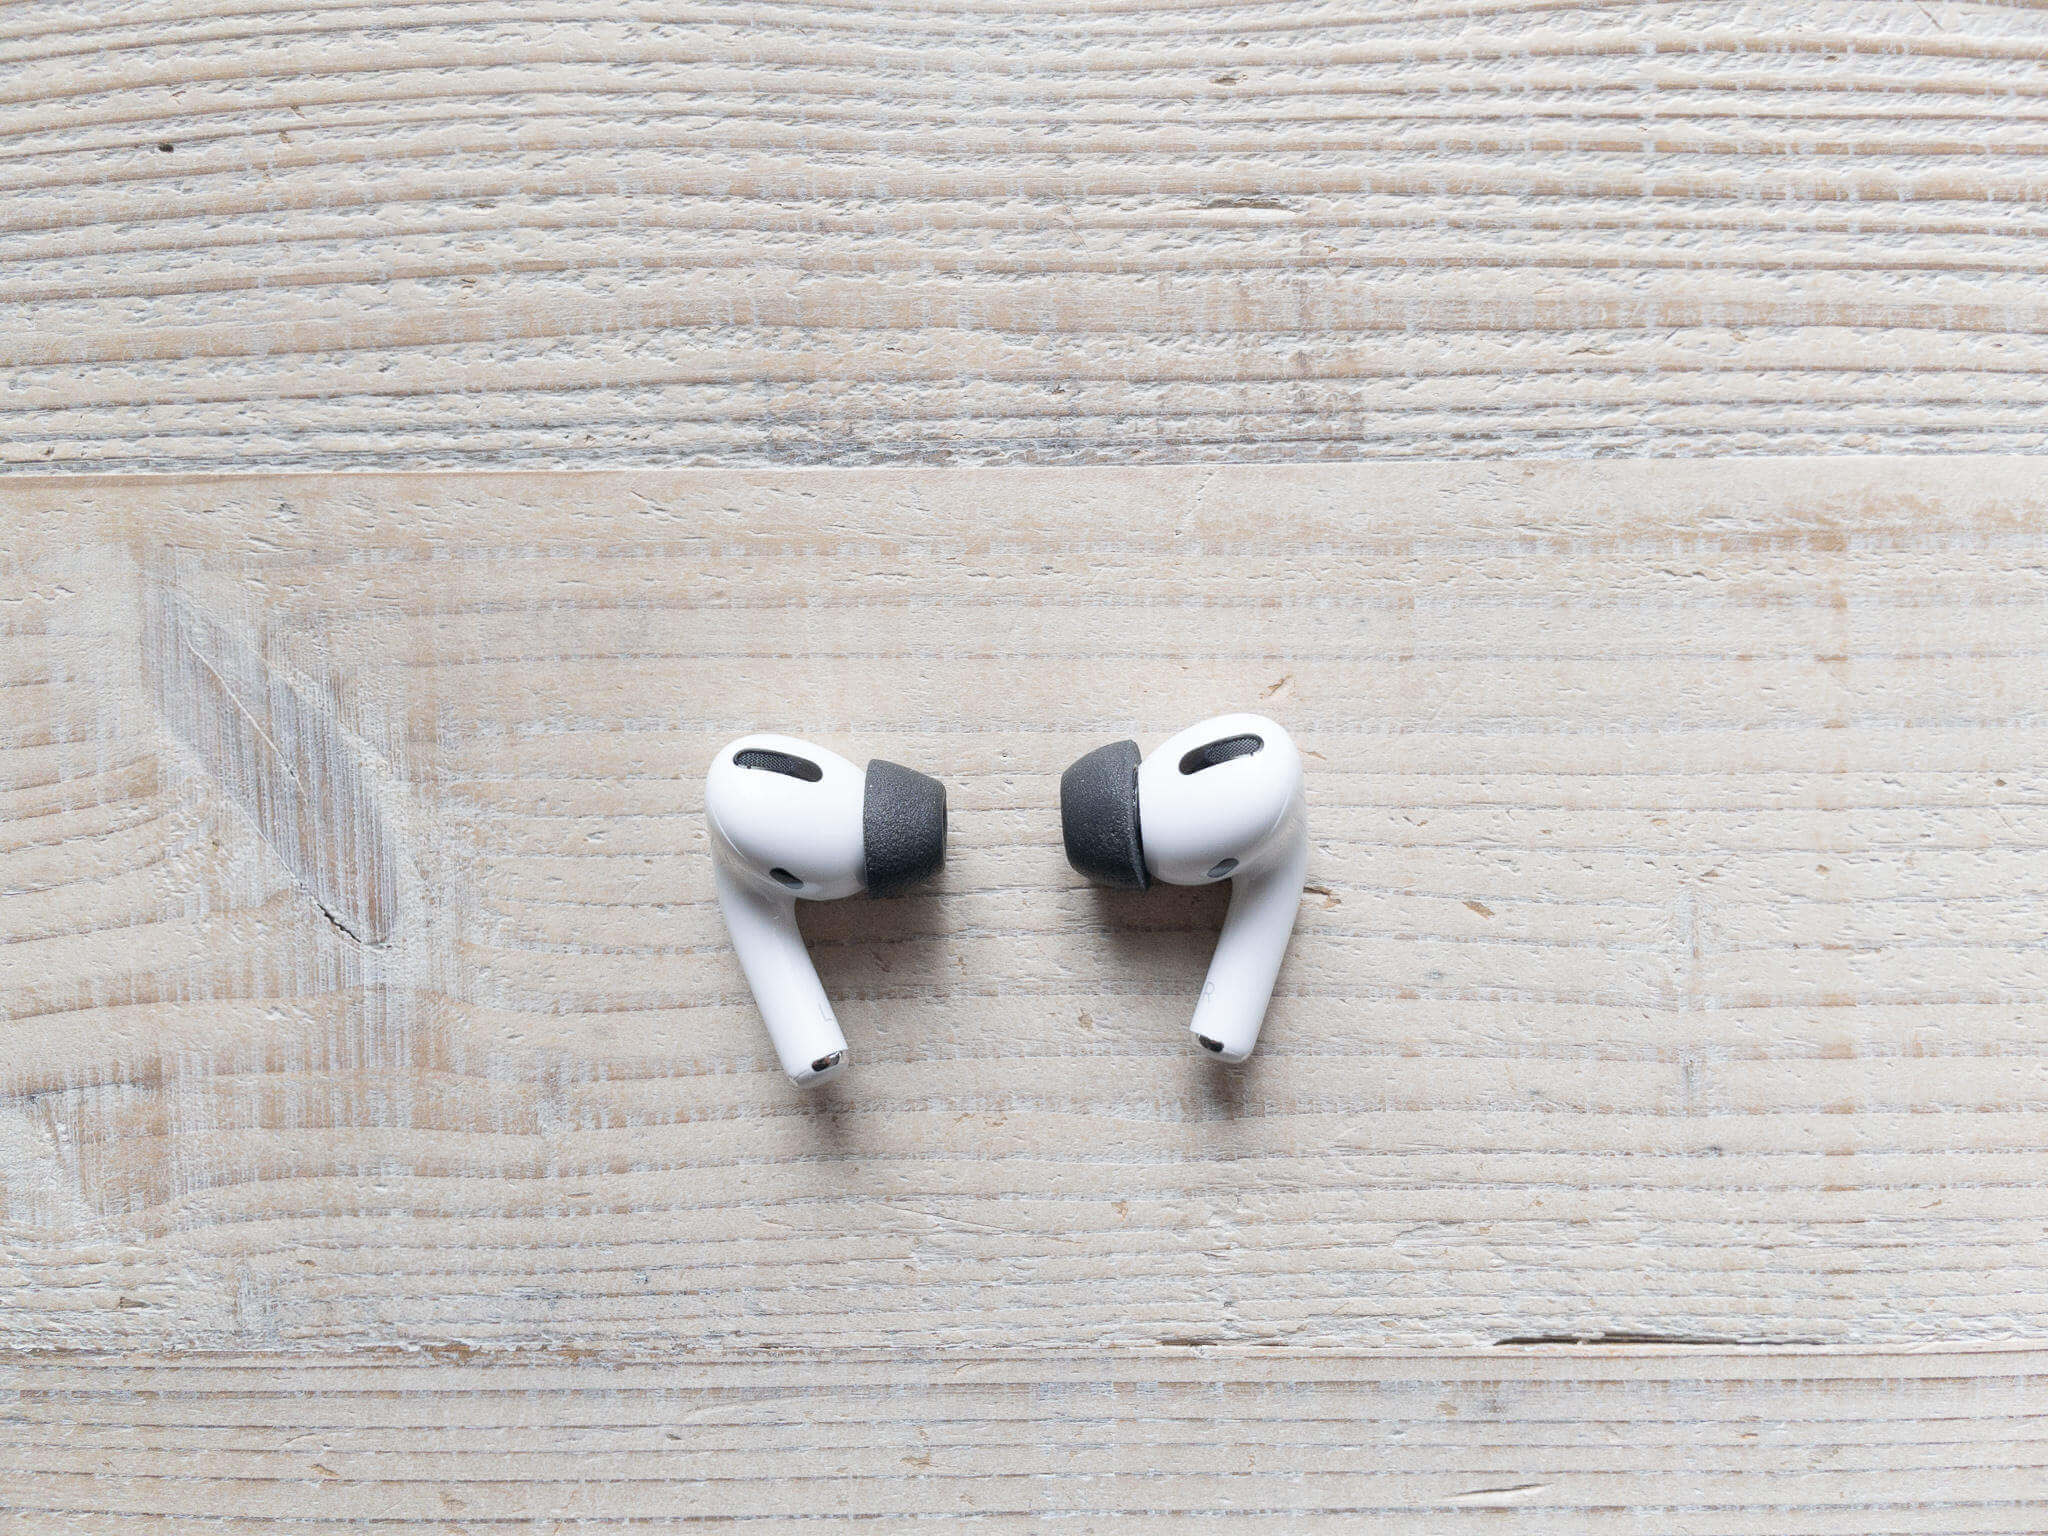 210314 comply airpods pro 9